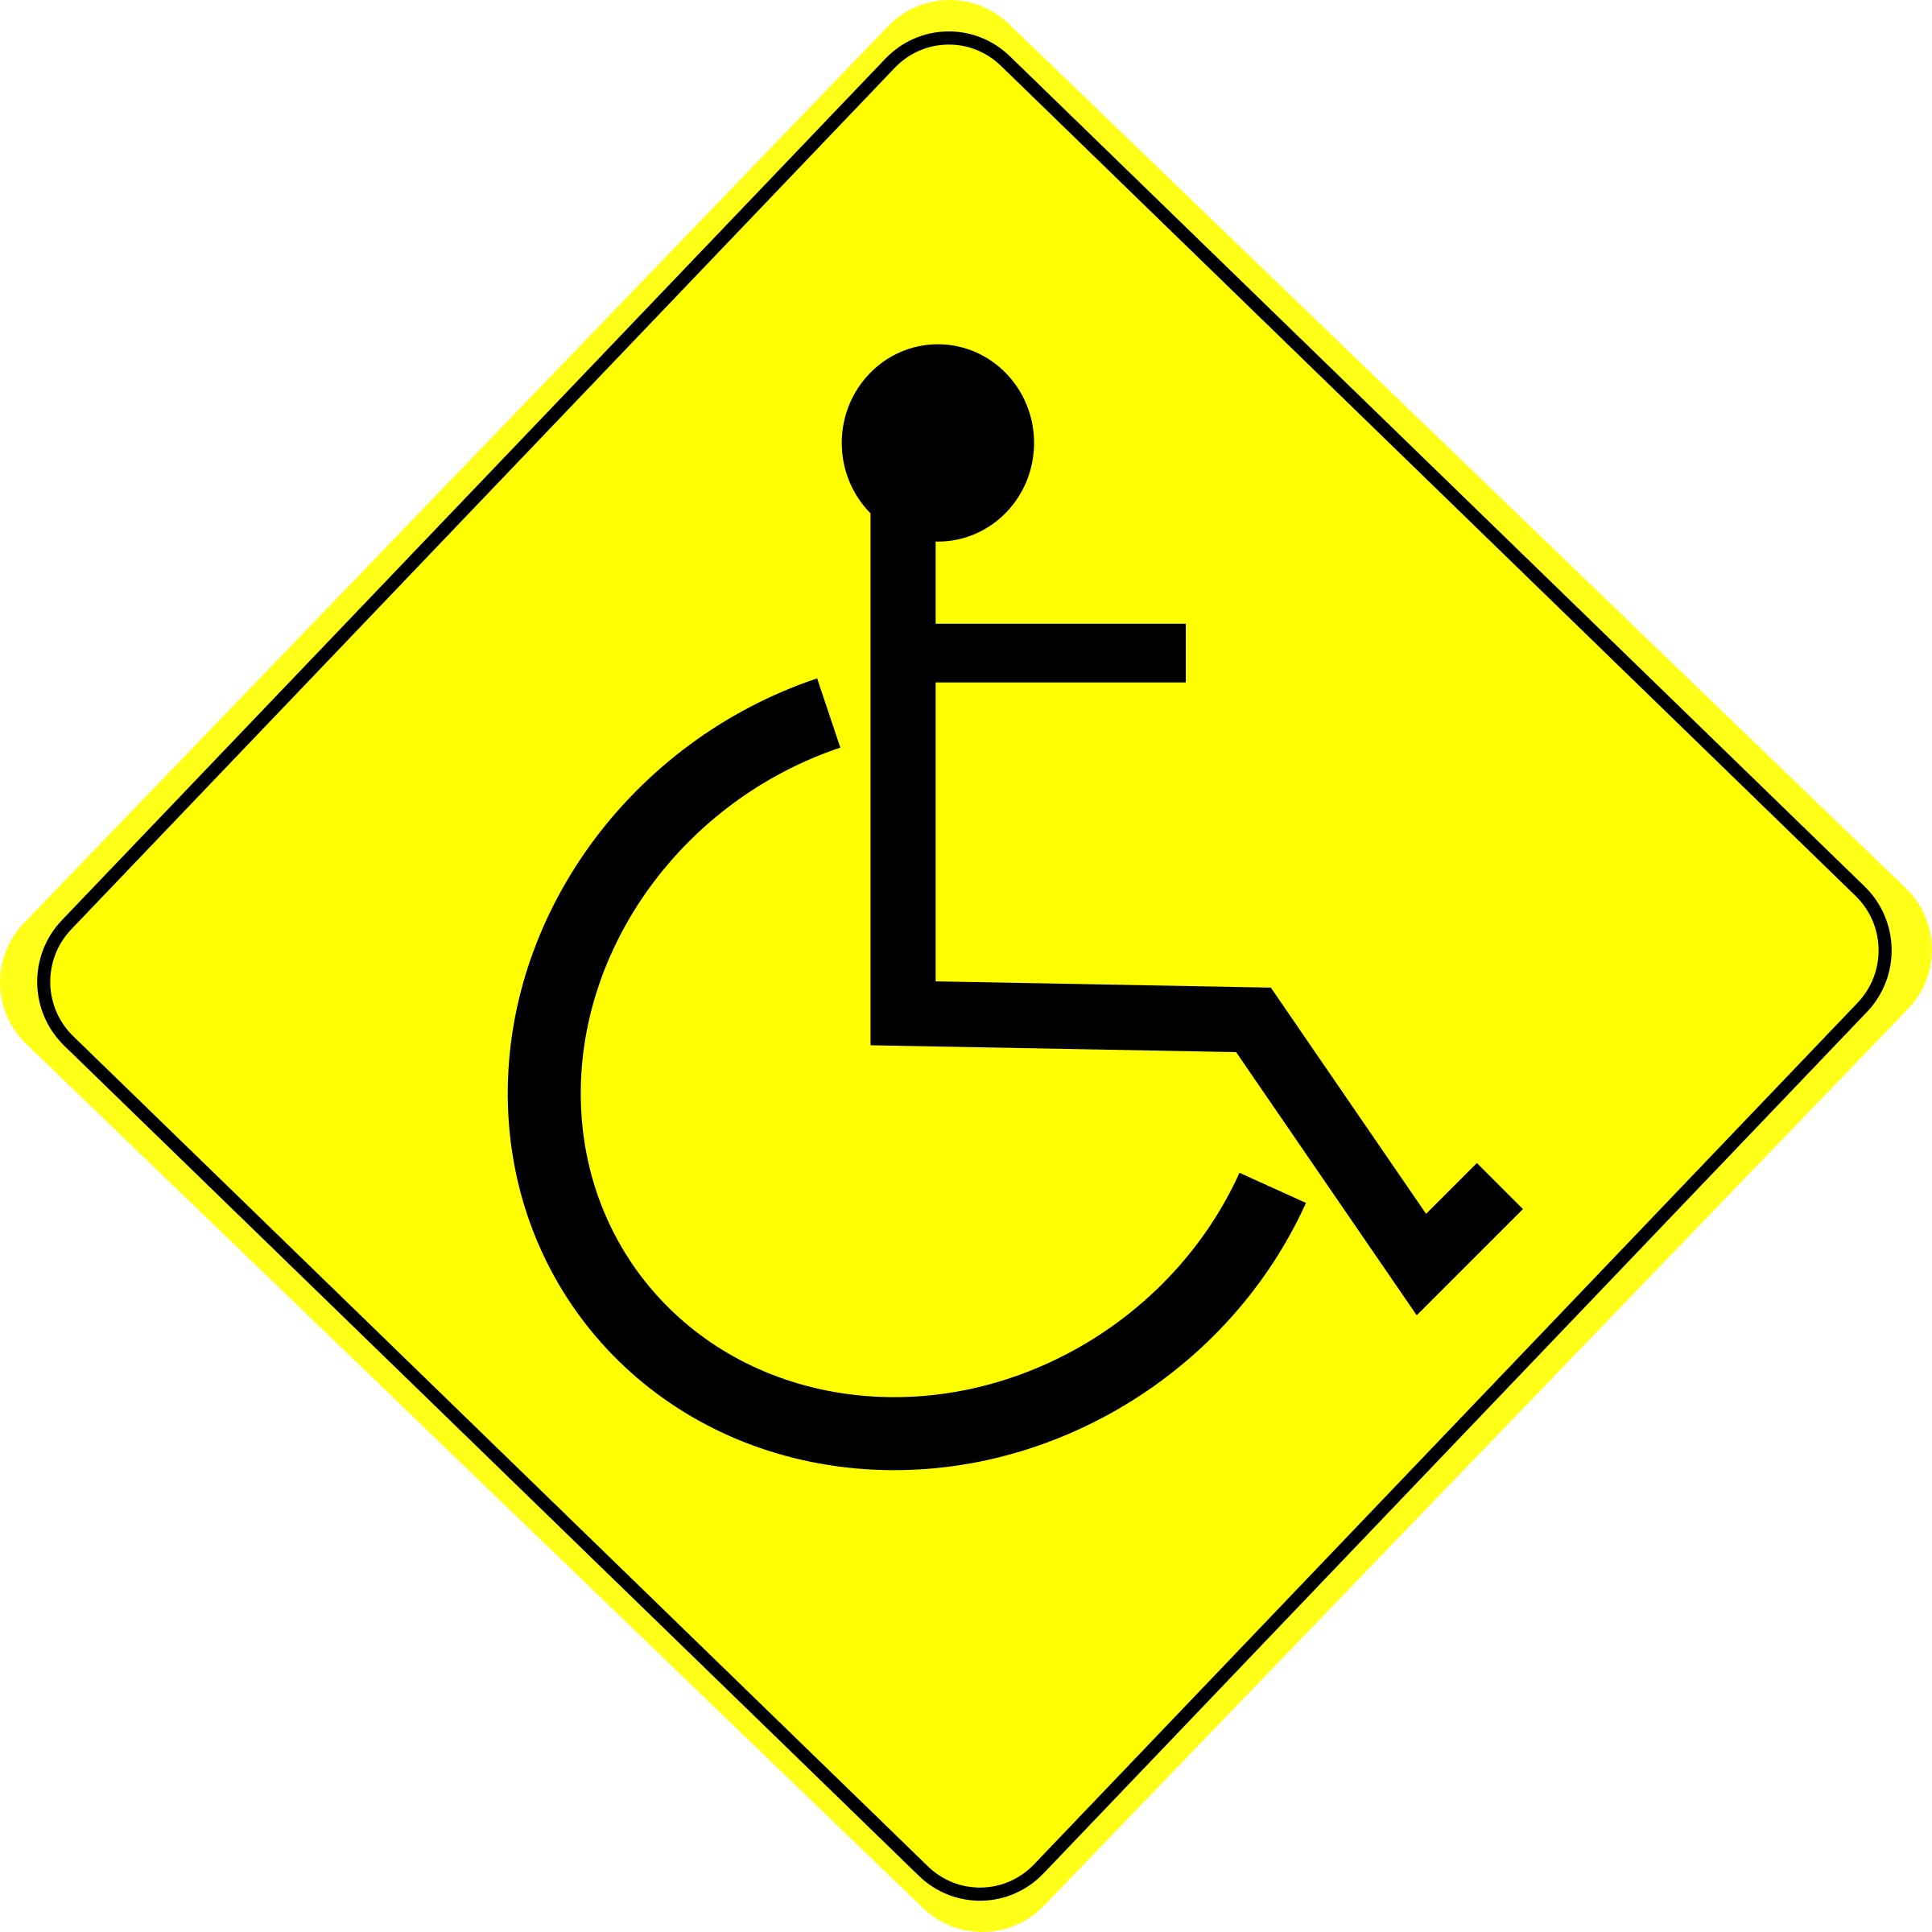 Wheelchair Caution Sign Black - Free Clipart Icon Download by schoolfreeware